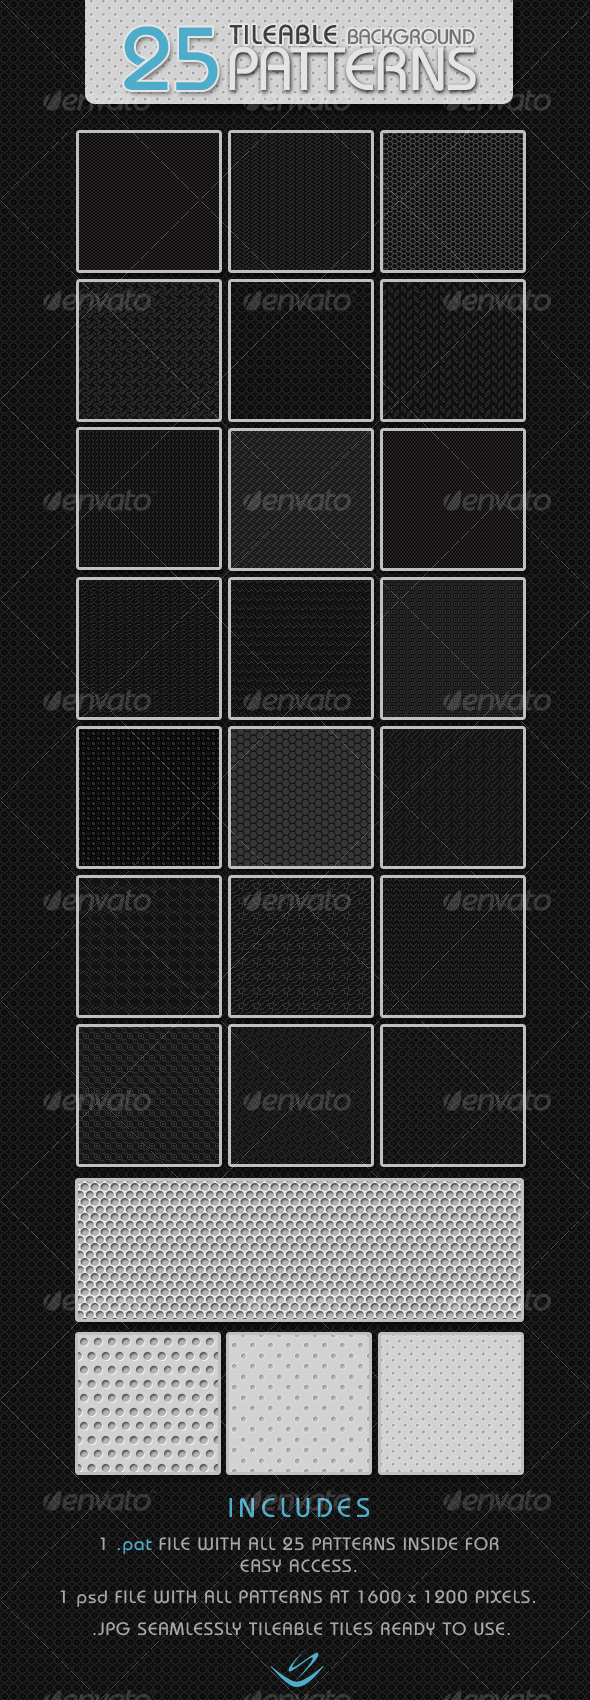 GraphicRiver 25 Tileable Background Patterns 67845